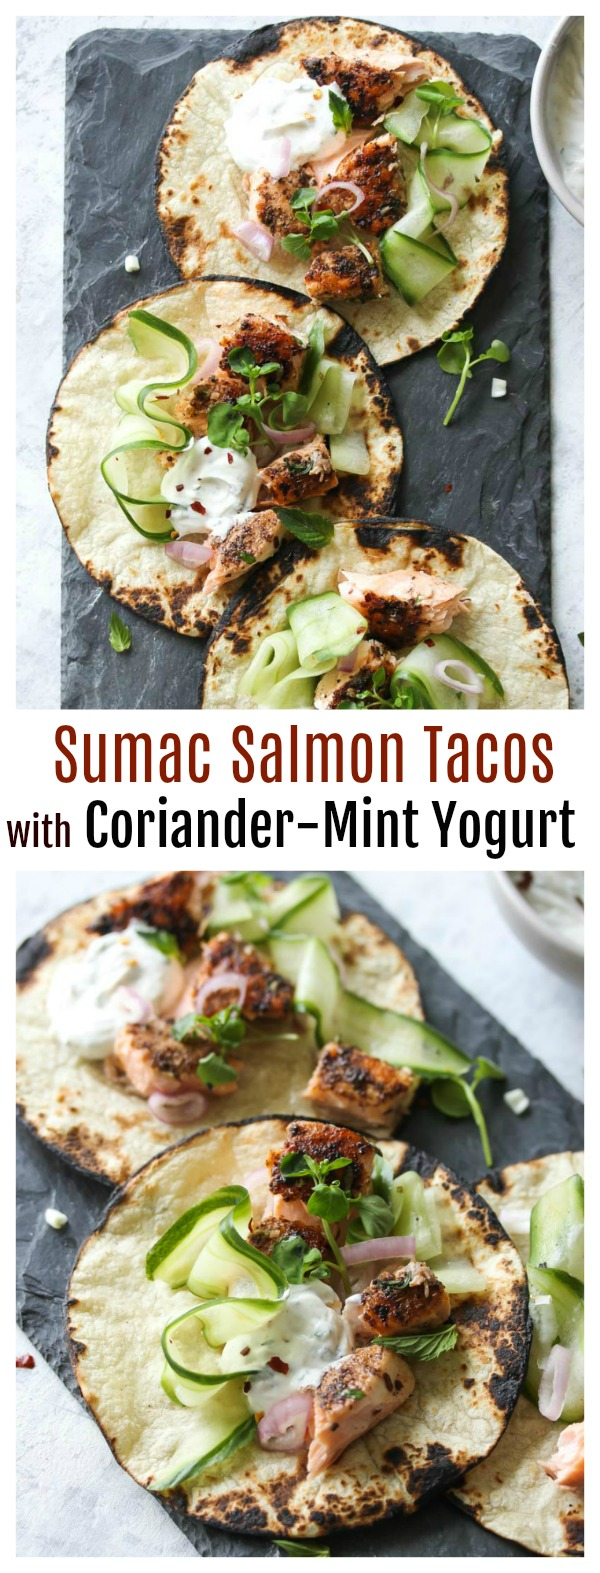 Sumac Salmon Tacos with Coriander-Mint Yogurt | dishingouthealth.com